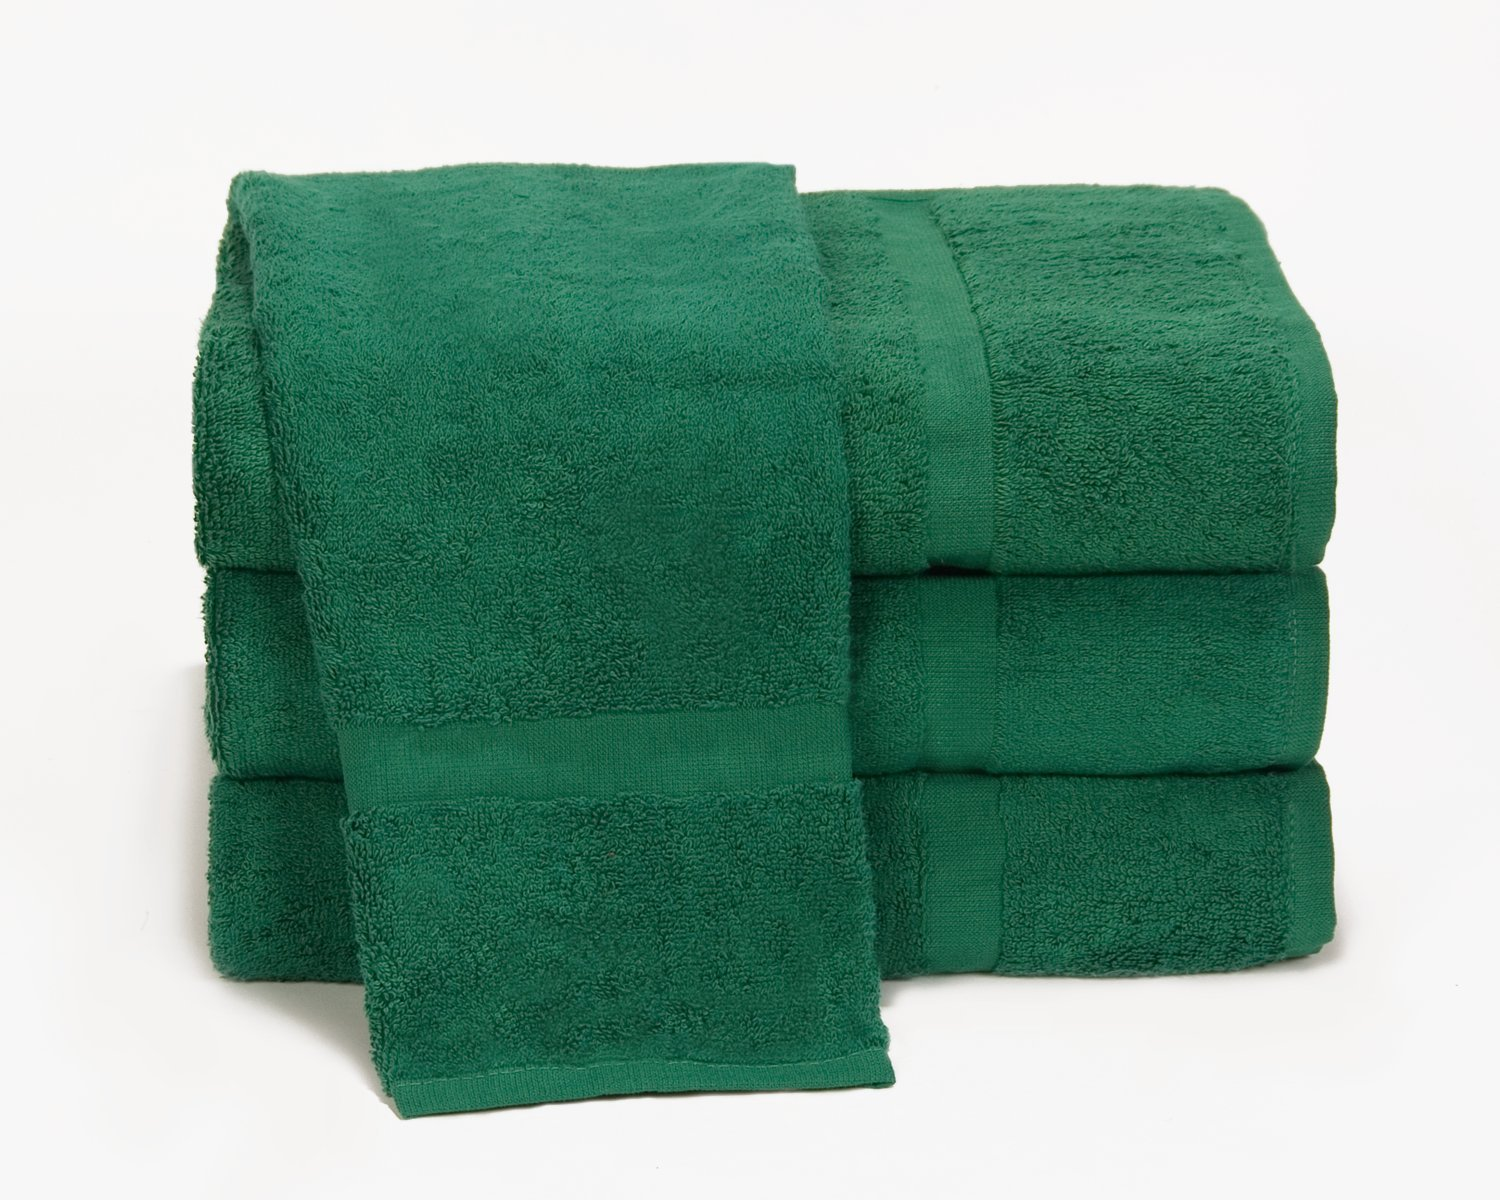 Towels by Doctor Joe Ambassador Hunter Green 16'' x 28'' Lint-Free Car Wash and Detailing Towel, Pack of 12